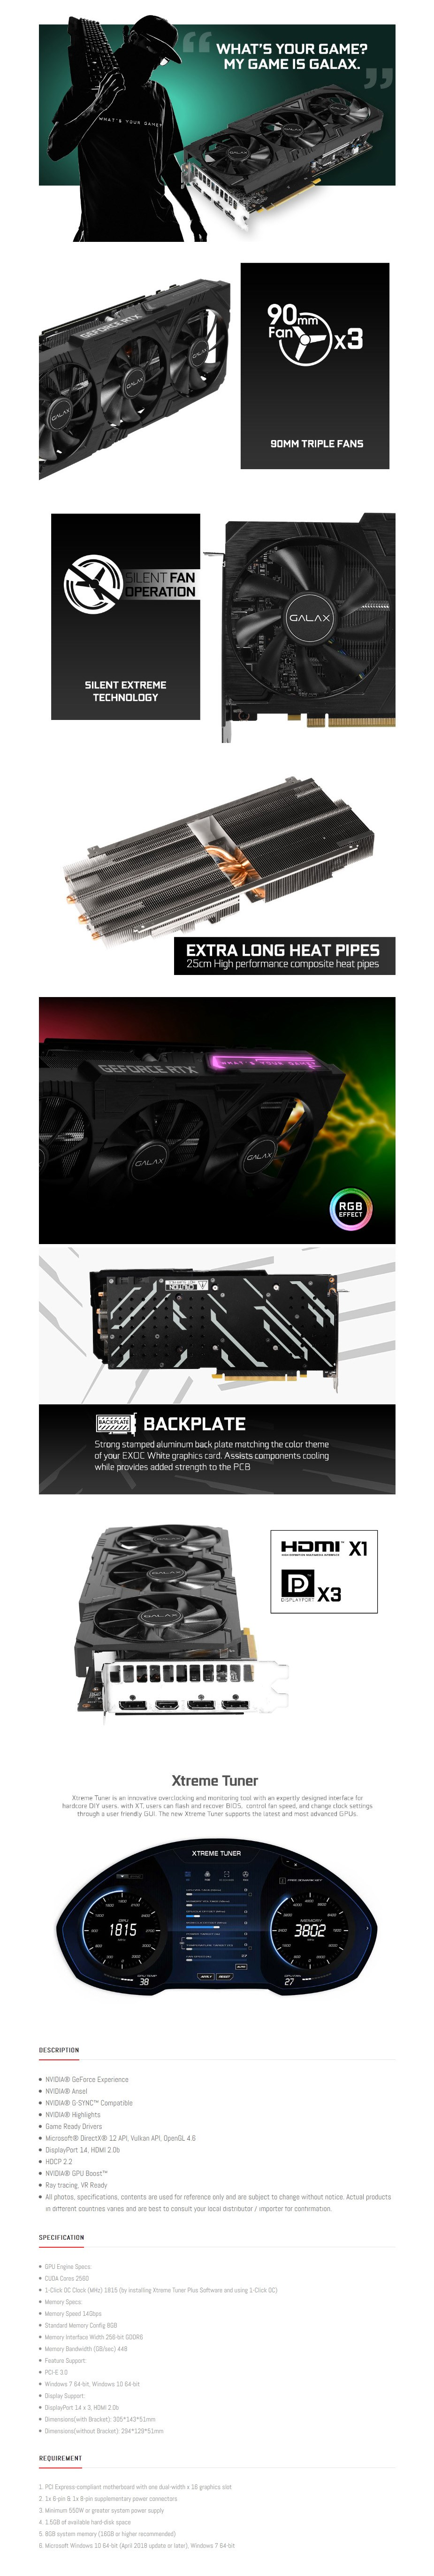 GALAX GeForce RTX 2070 Super EX Gamer Black Edition 8GB Video Card - Overview 1